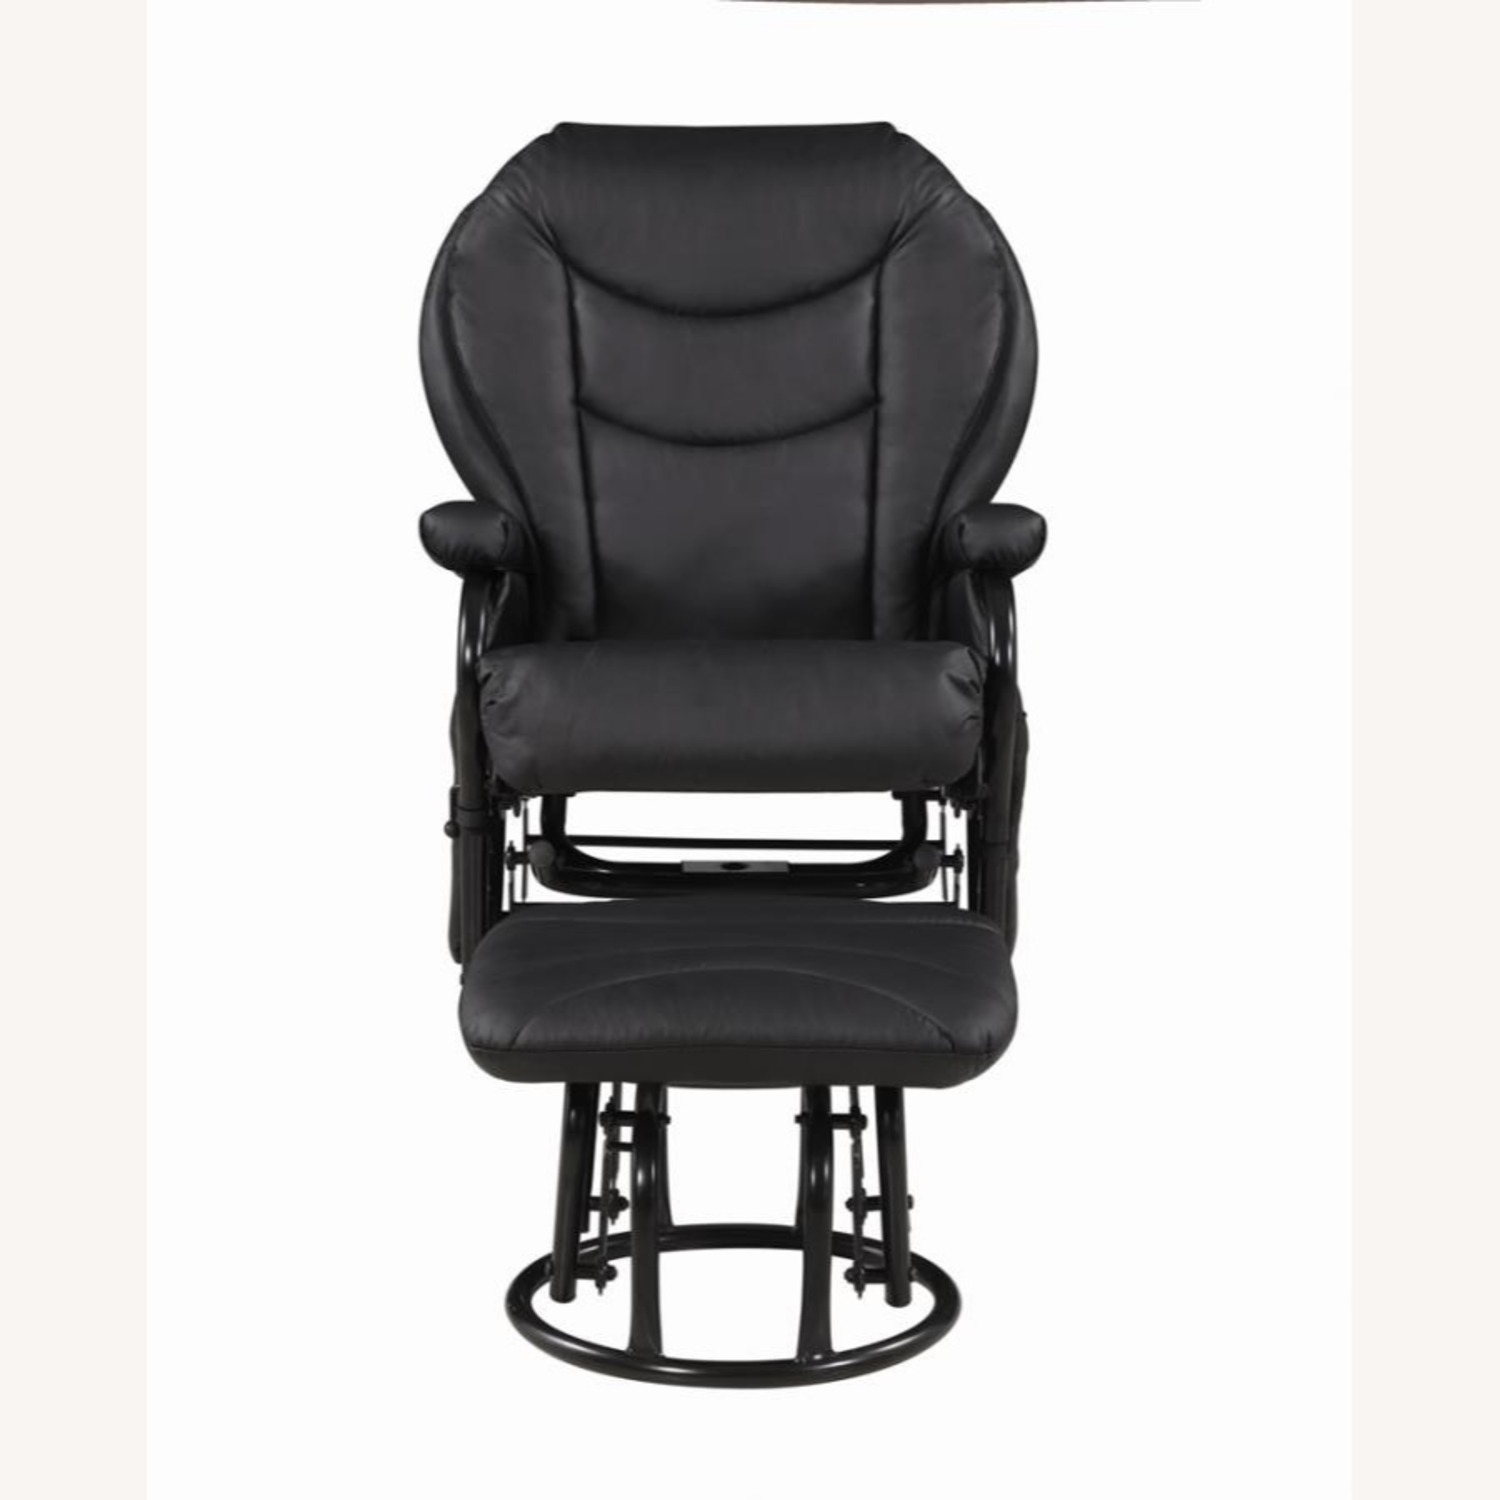 Glider W/ Ottoman In Black Leatherette Upholstery - image-1